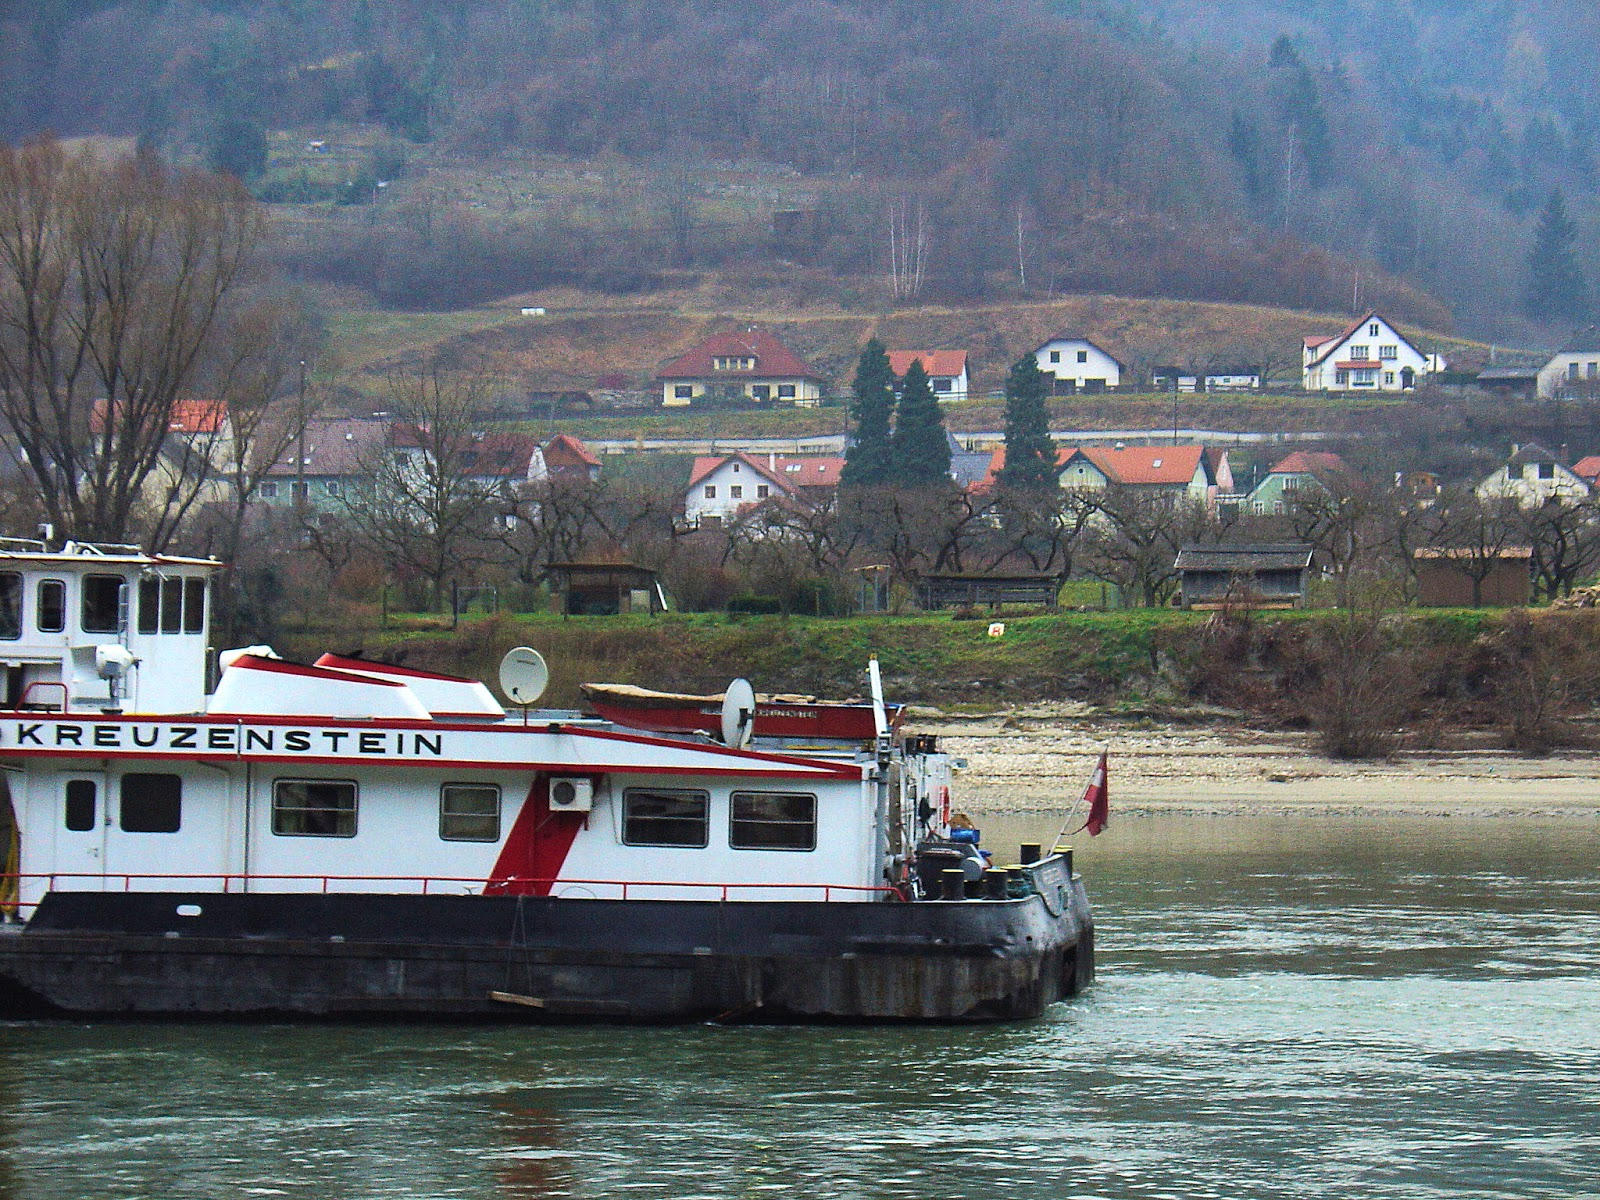 Cruising along the Danube River in Austria.